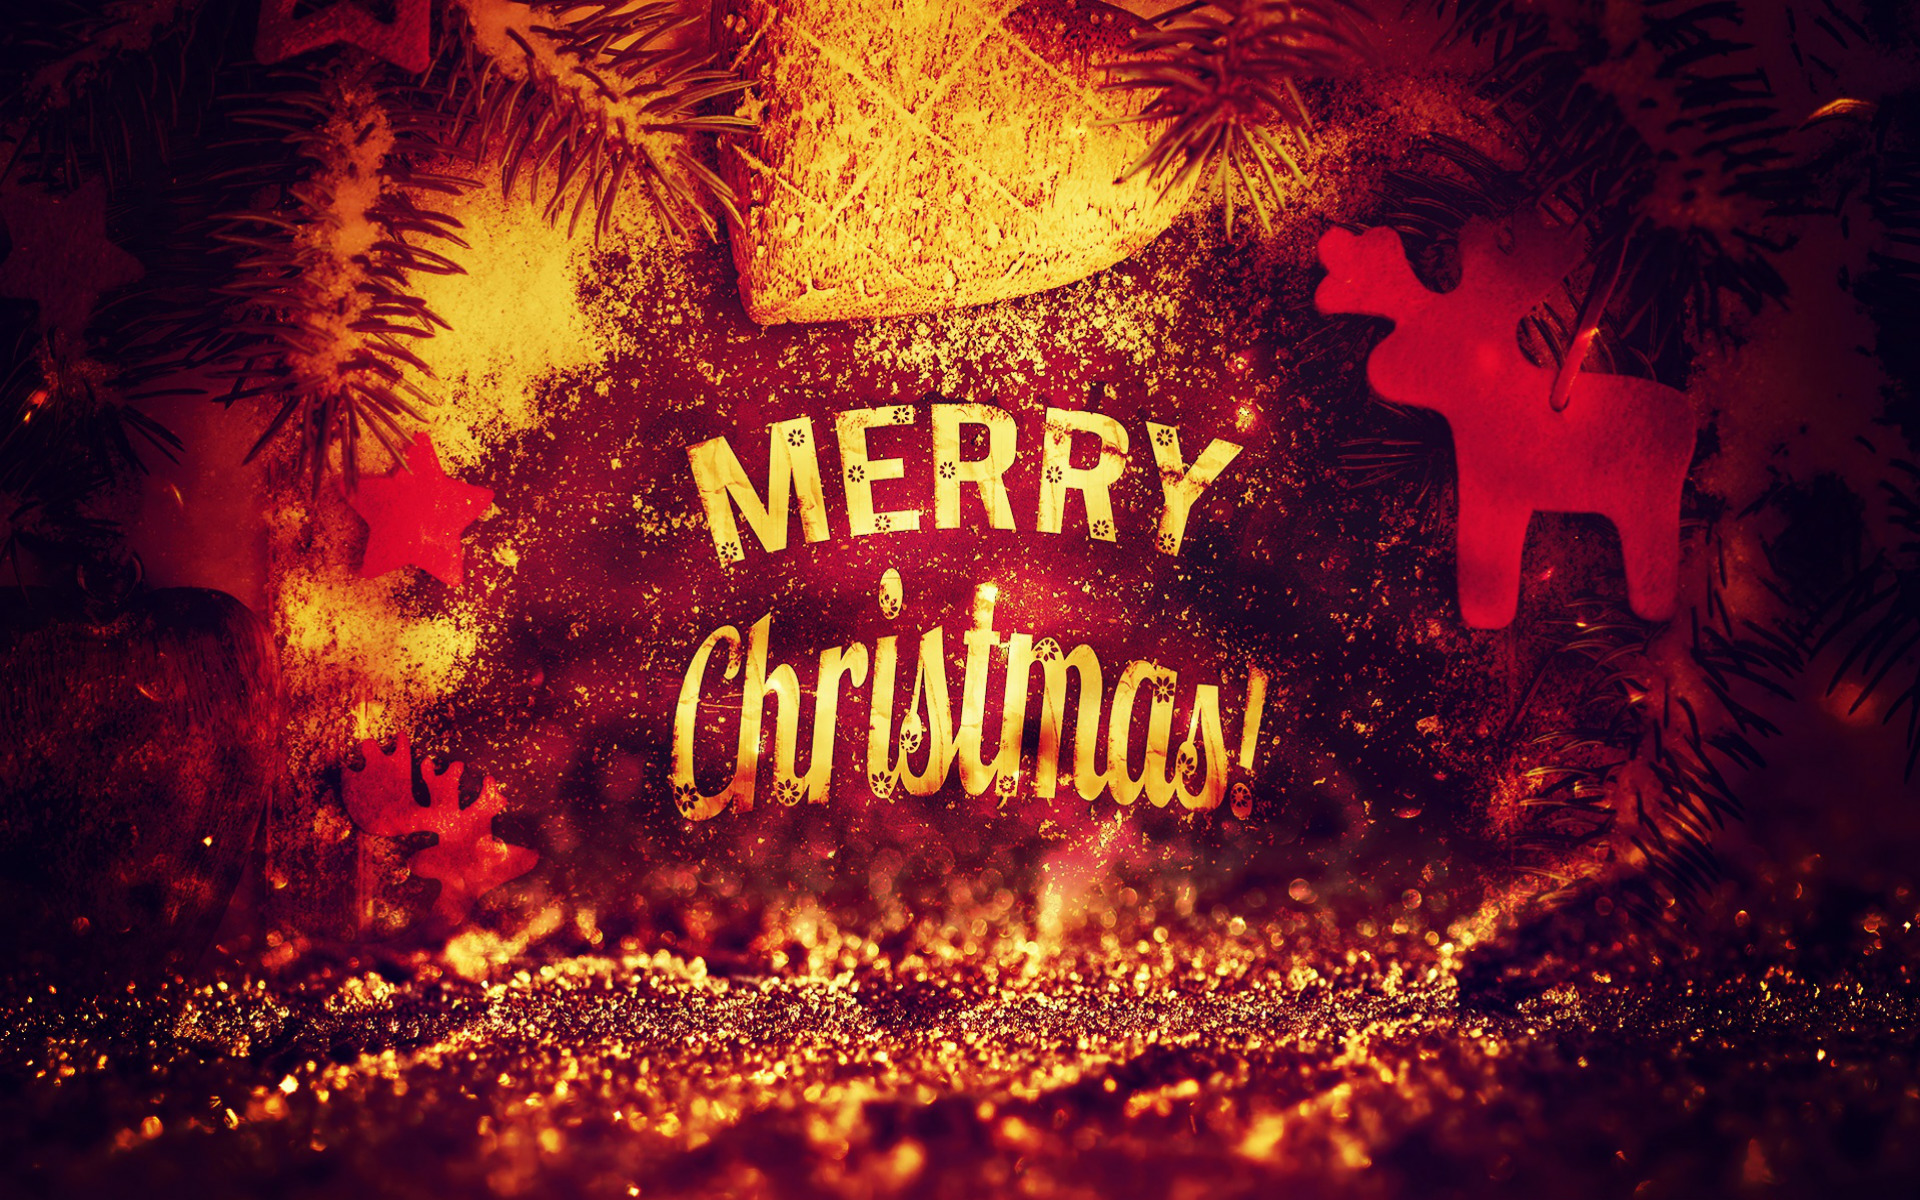 Merry Christmas Wallpapers For Desktop , HD Wallpaper & Backgrounds